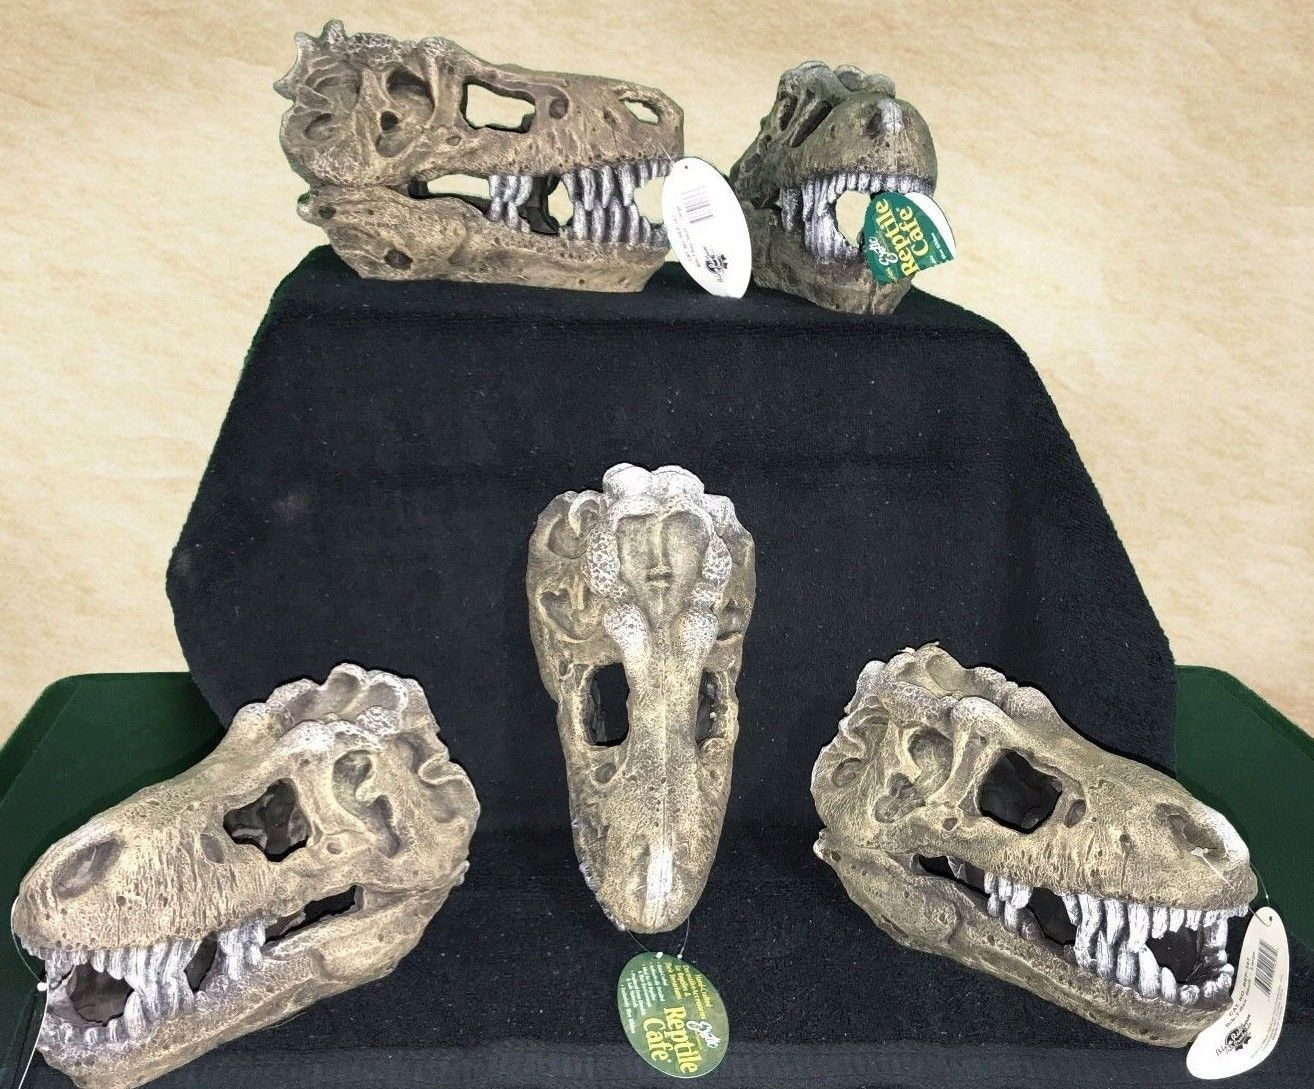 Large Terrarium Decoration T Rex Skull In Pet Supplies Small Animal Supplies Other Small Animal Supplies Ebay Large Terrarium Terrarium Skull